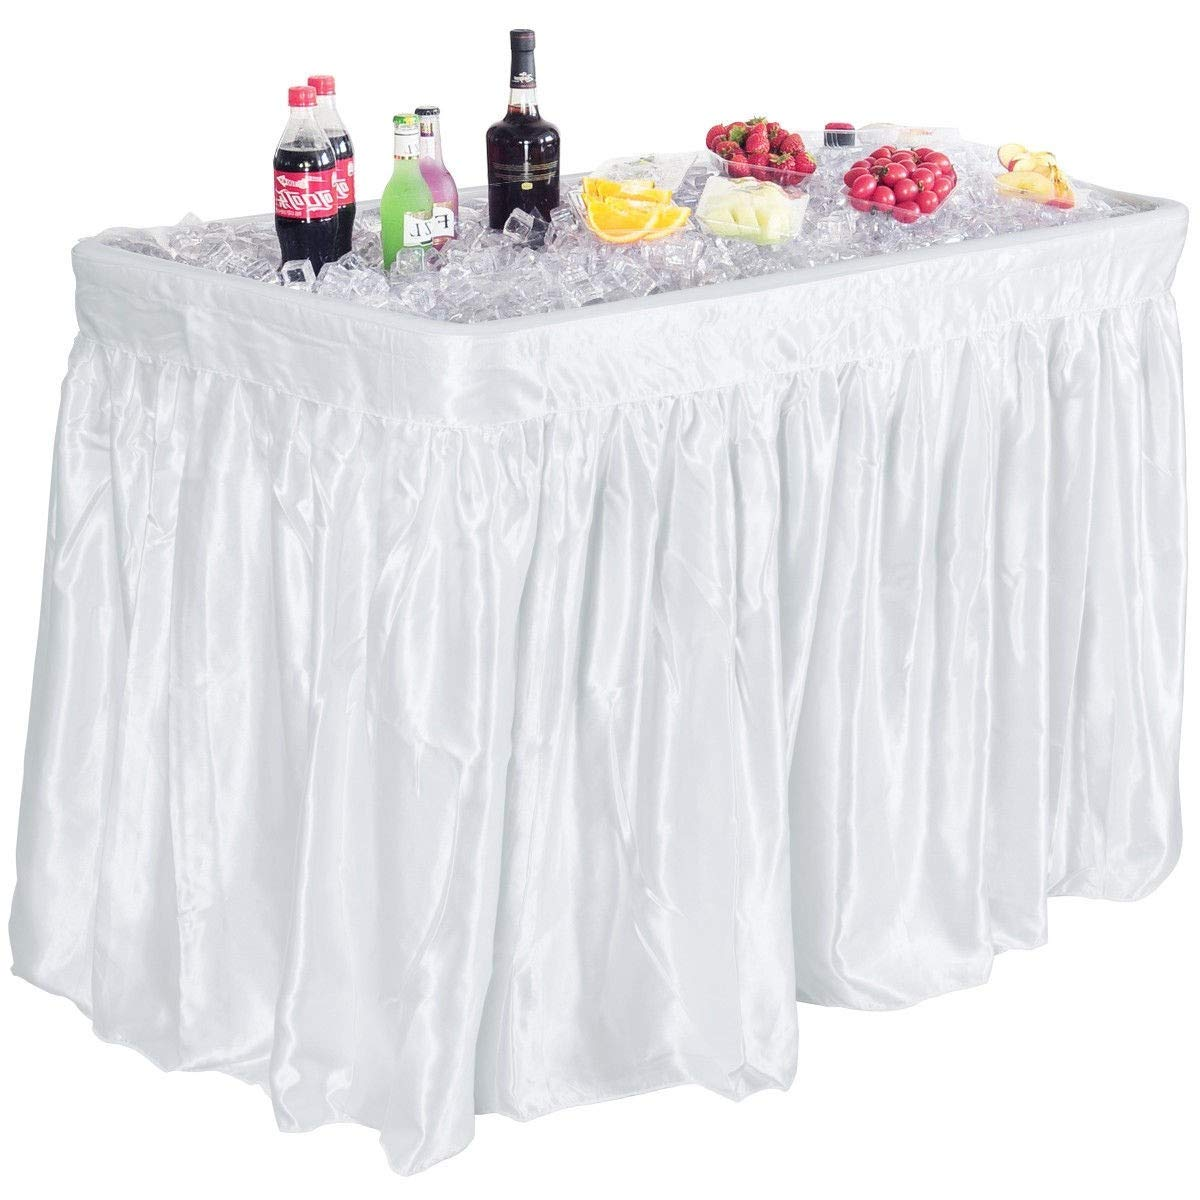 Get Quotations  C2 B Foot Party Ice Cooler Folding Table Plastic With Matching Skirt White